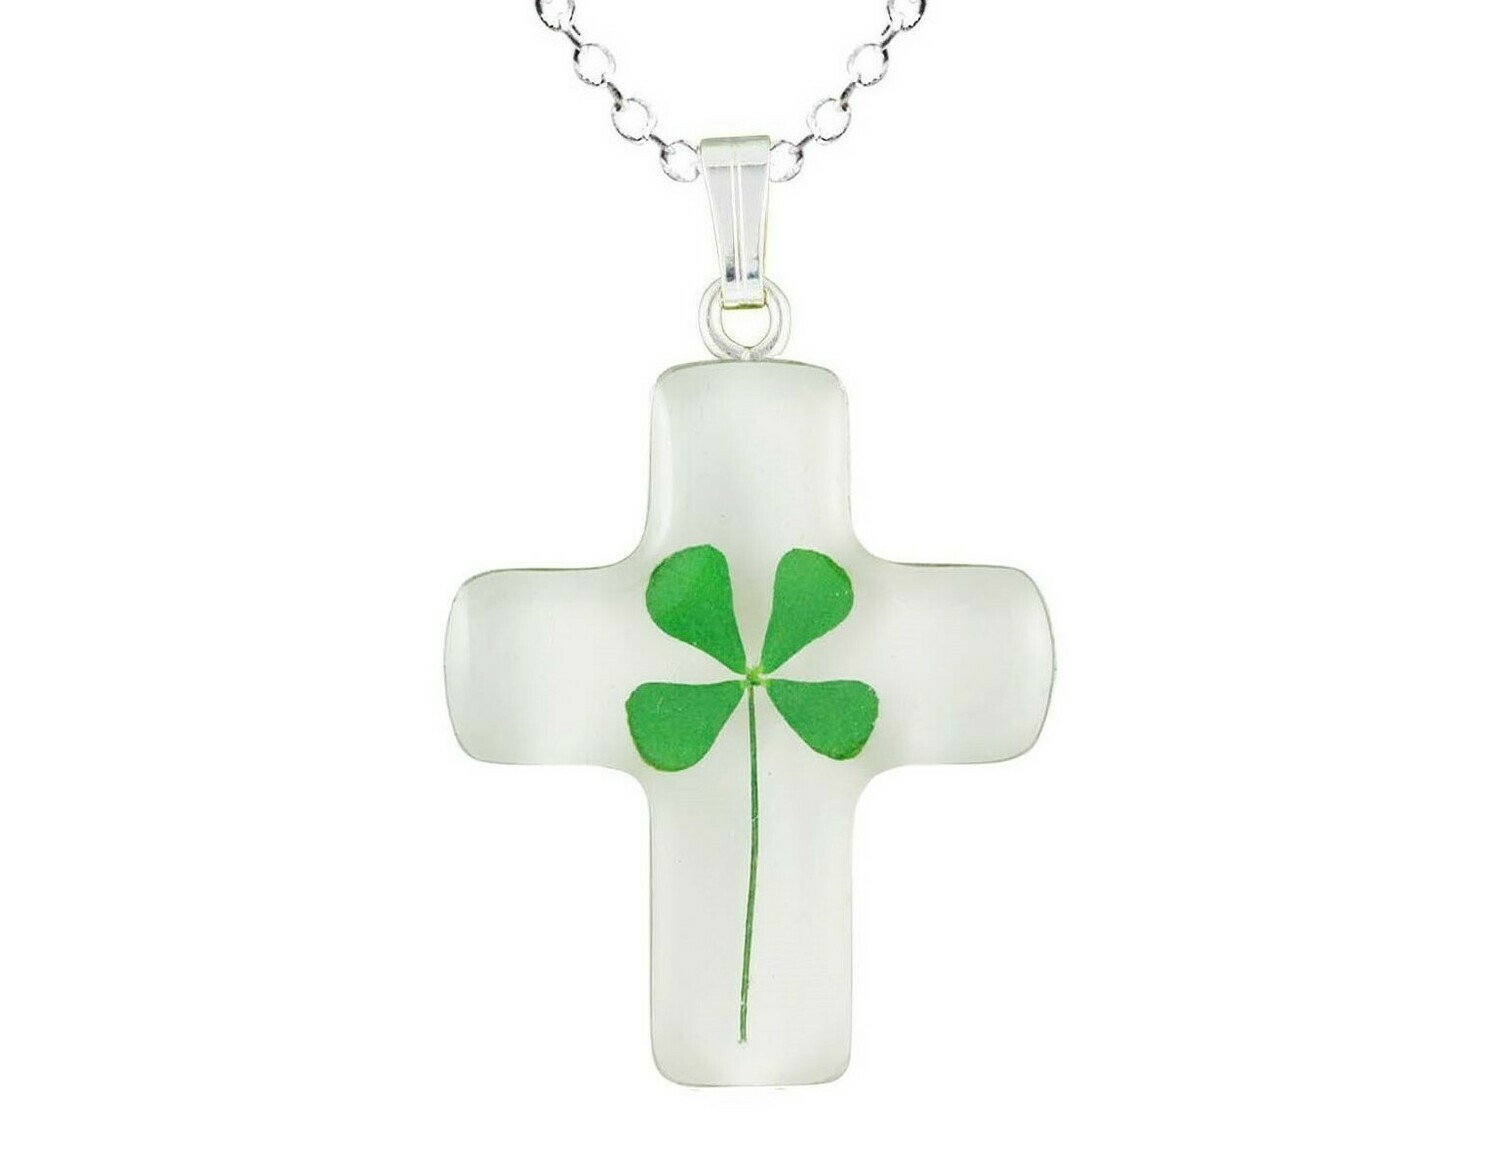 Clover Necklace, Medium Cross, White Background